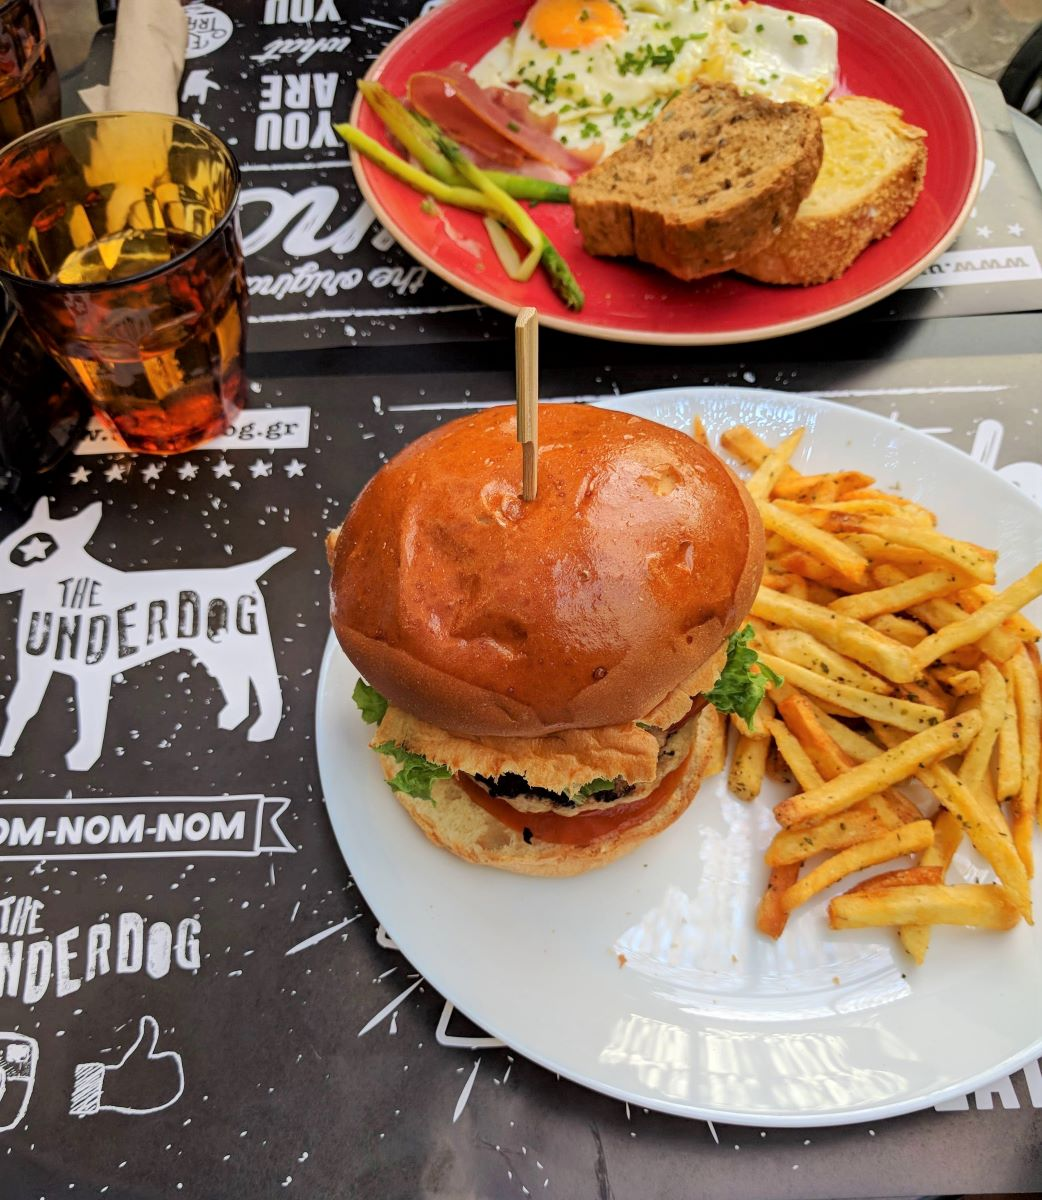 Burgers are always a must during brunch time, especially in  Underdog 's courtyard.